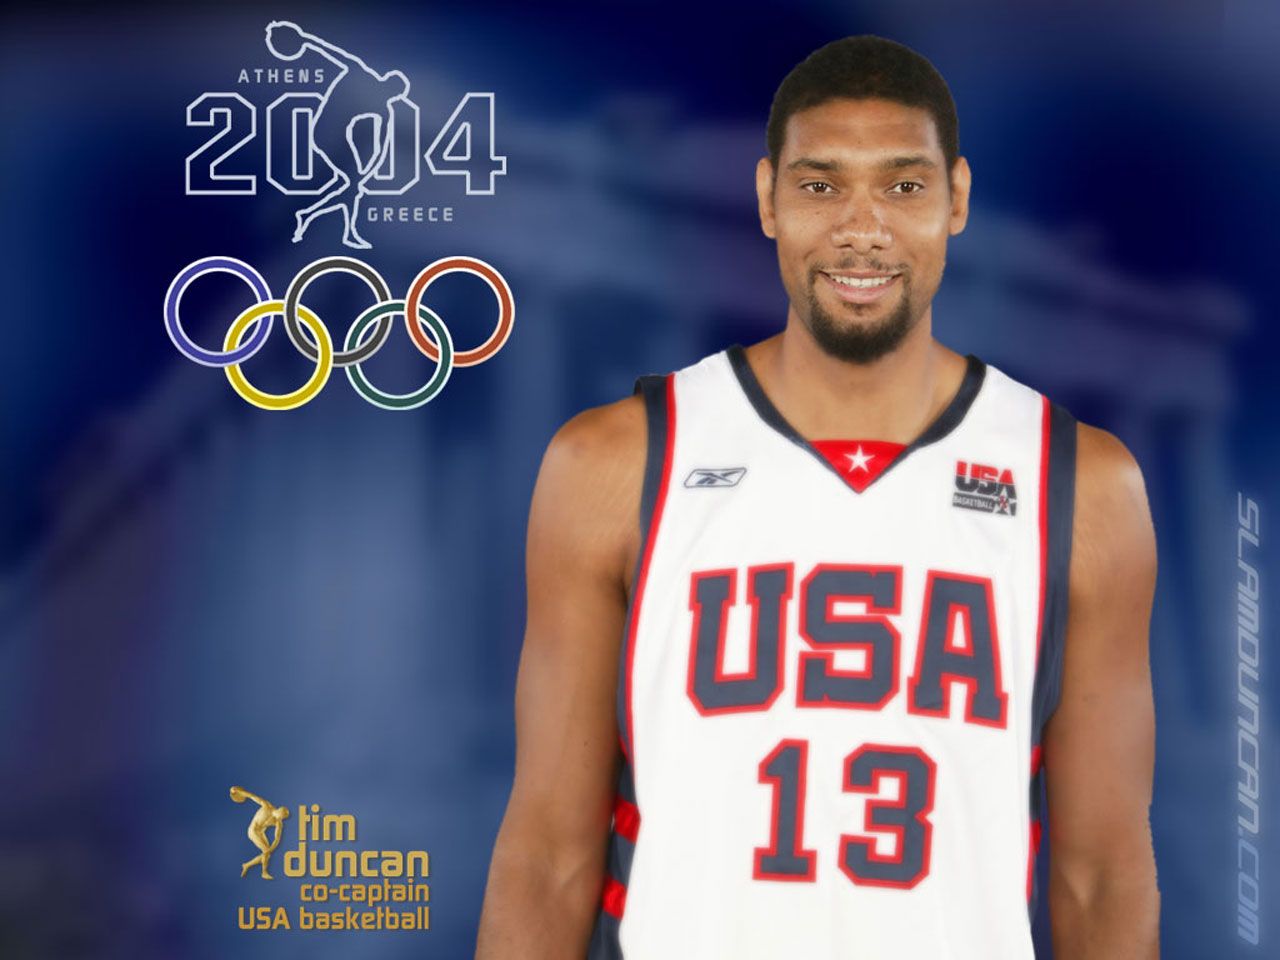 Tim Duncan Olympics 2004 USA Team Wallpaper - Basketball Wallpapers